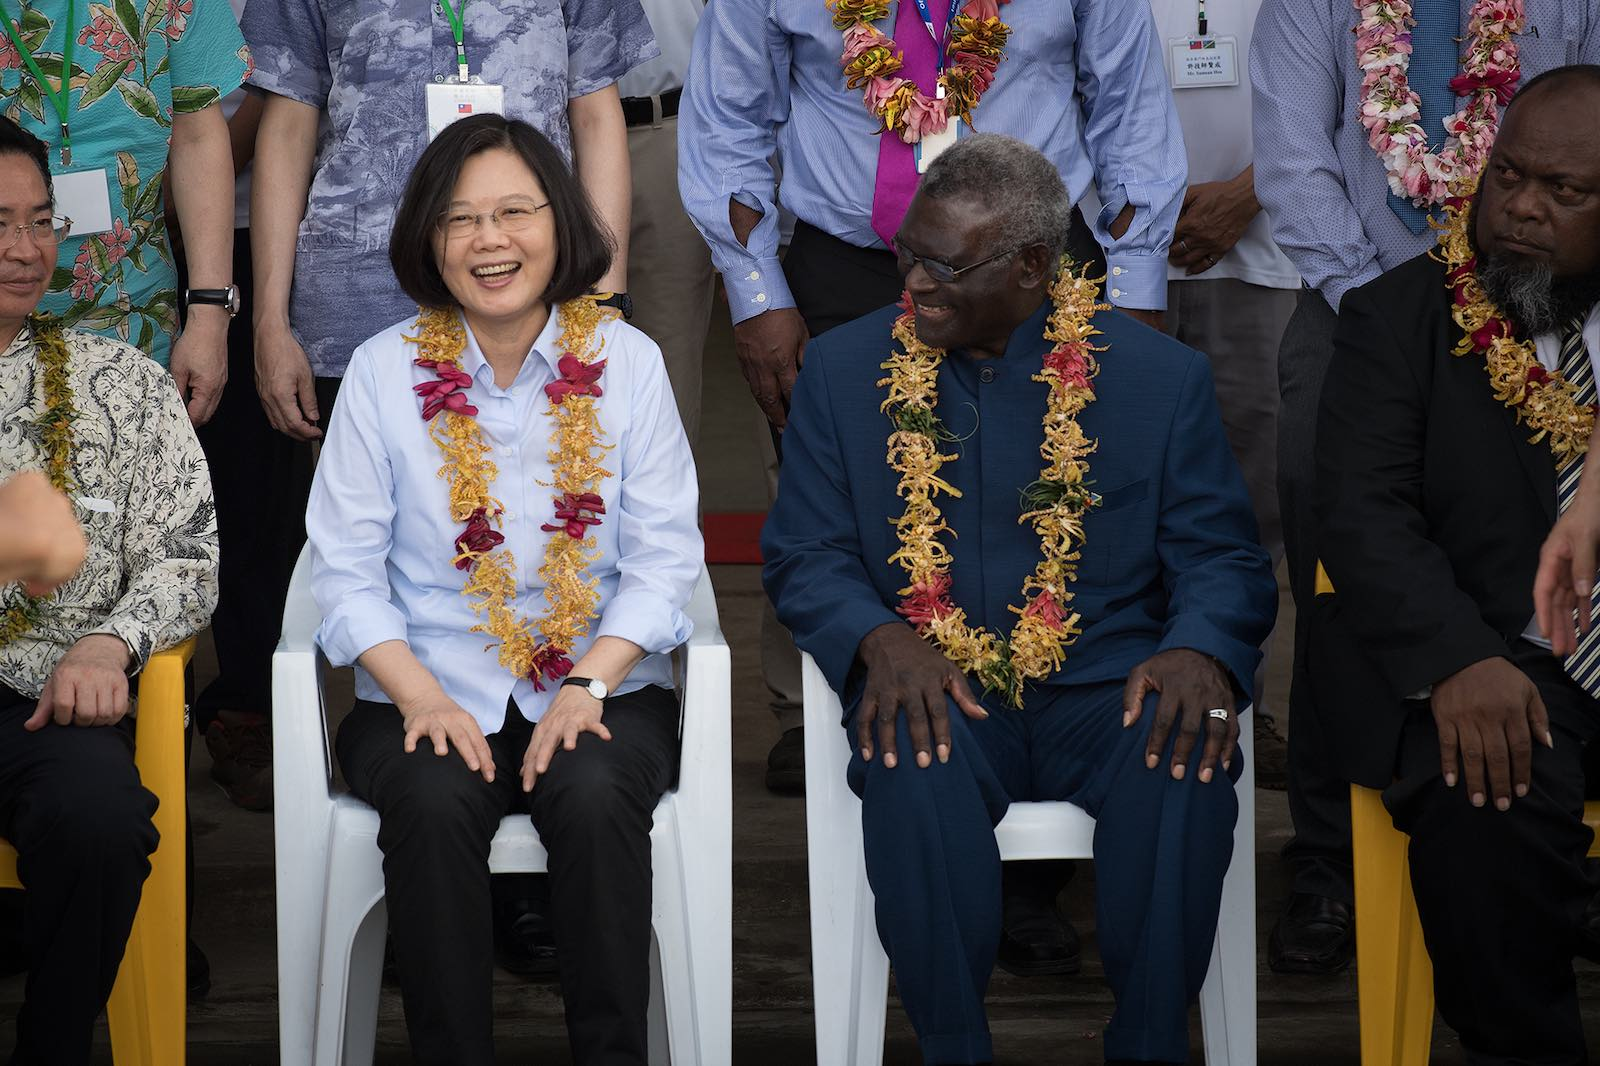 Taiwan's Tsai Ing-wen (left) with Solomon Islands' Manasseh Sogavare in Honiara, 2017 (Photo: Taiwan Presidential Office/Flickr)